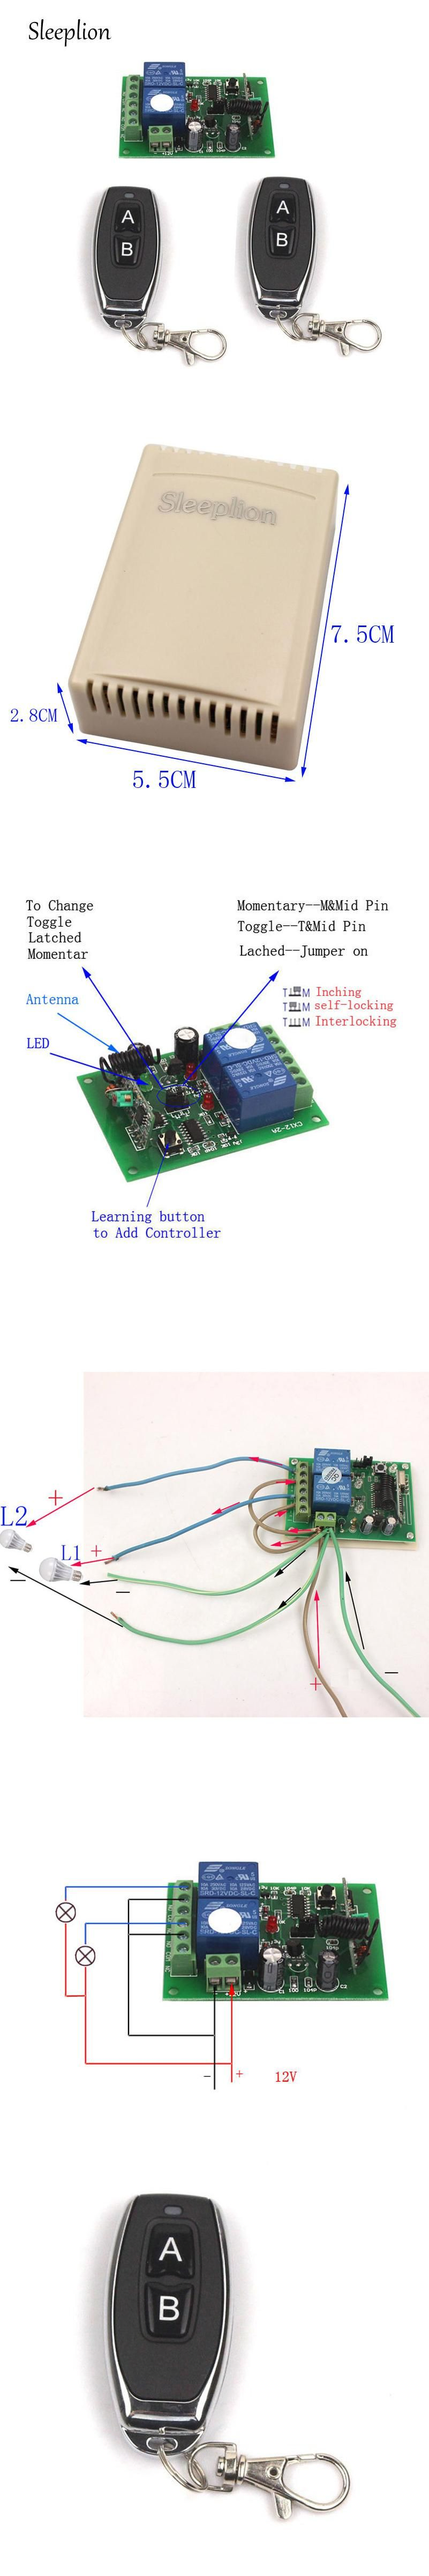 Sleeplion 12v 10a 2 Ch Channel Remote Control Switch Relay Wireless Motor Controller Transmitter Receiver Reverse